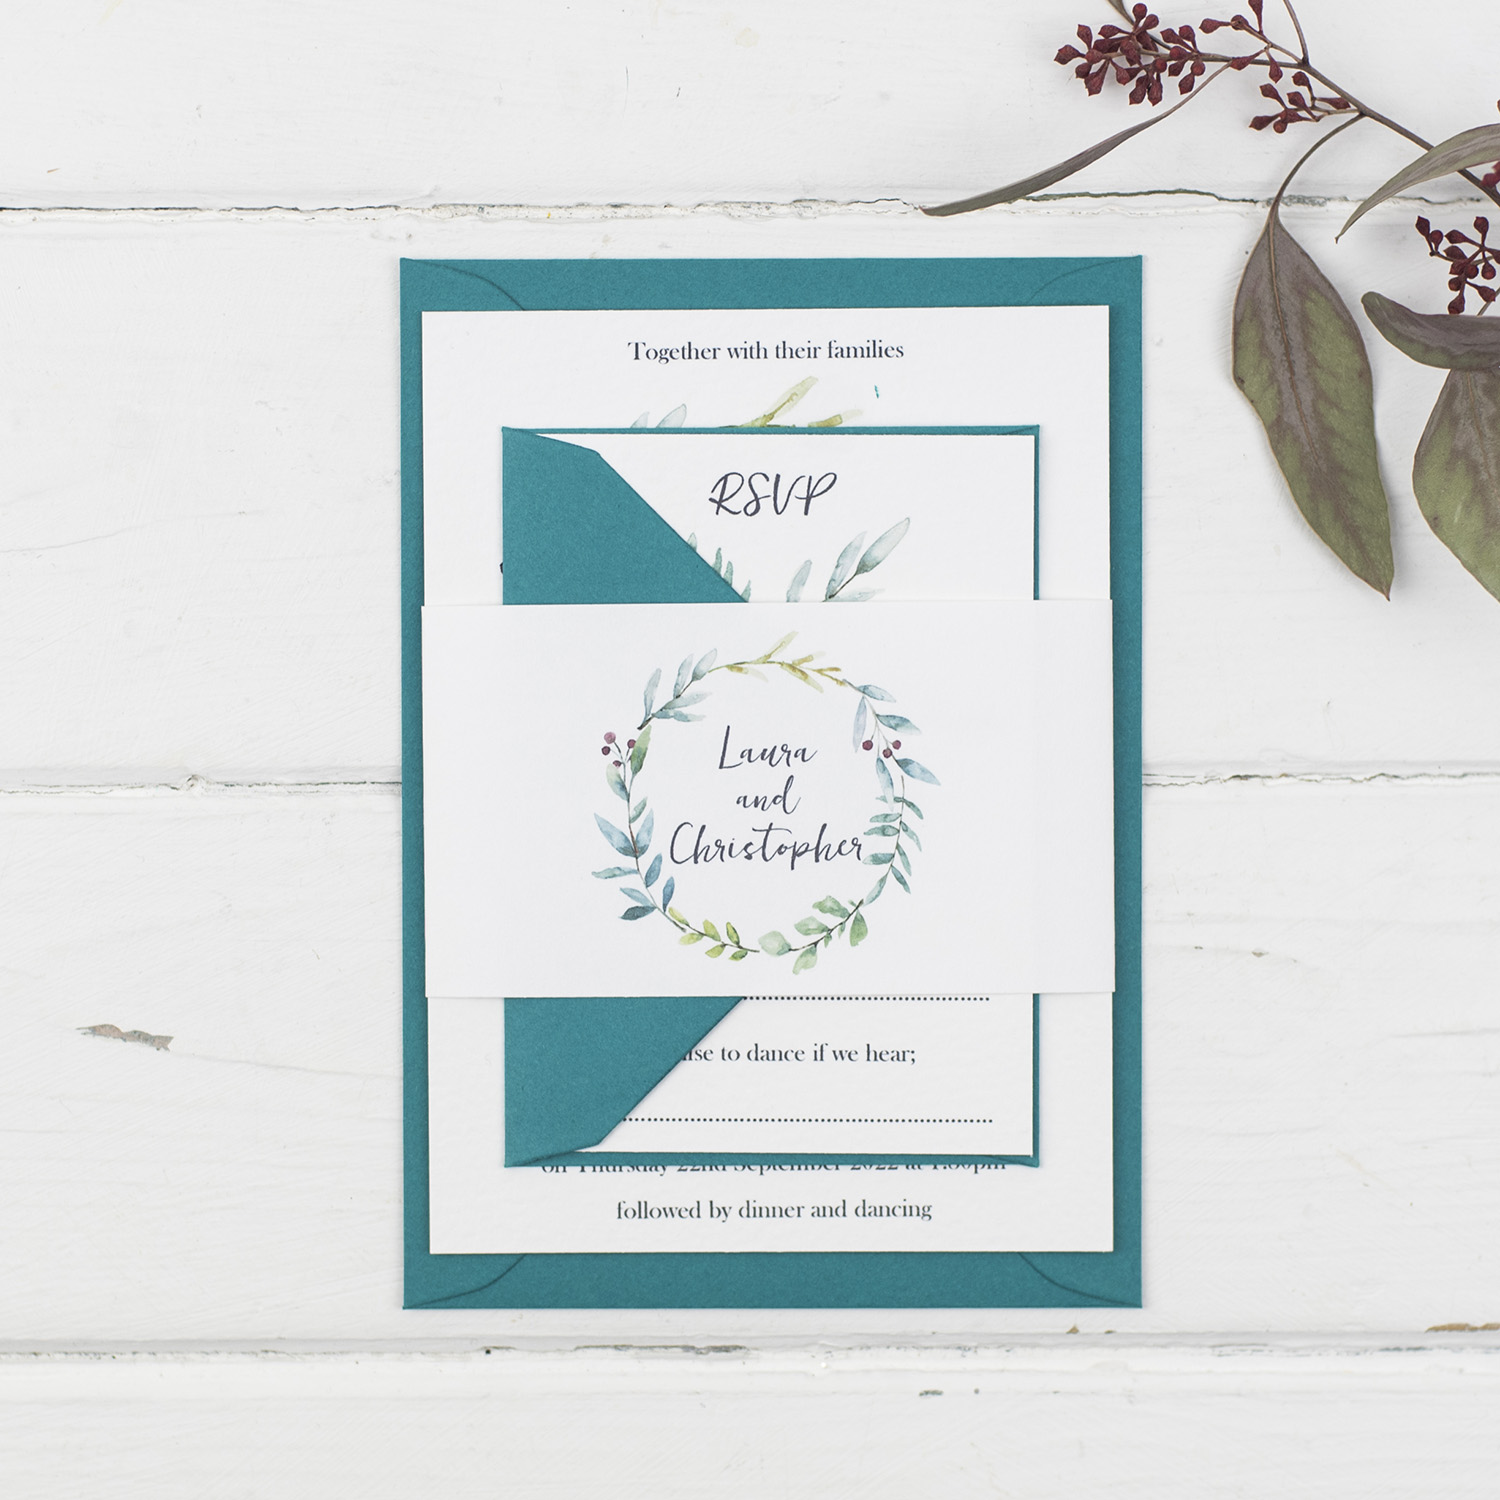 handmade wedding invitations invite rsvp bellyband white textured painted foliage wreath teal envelopes